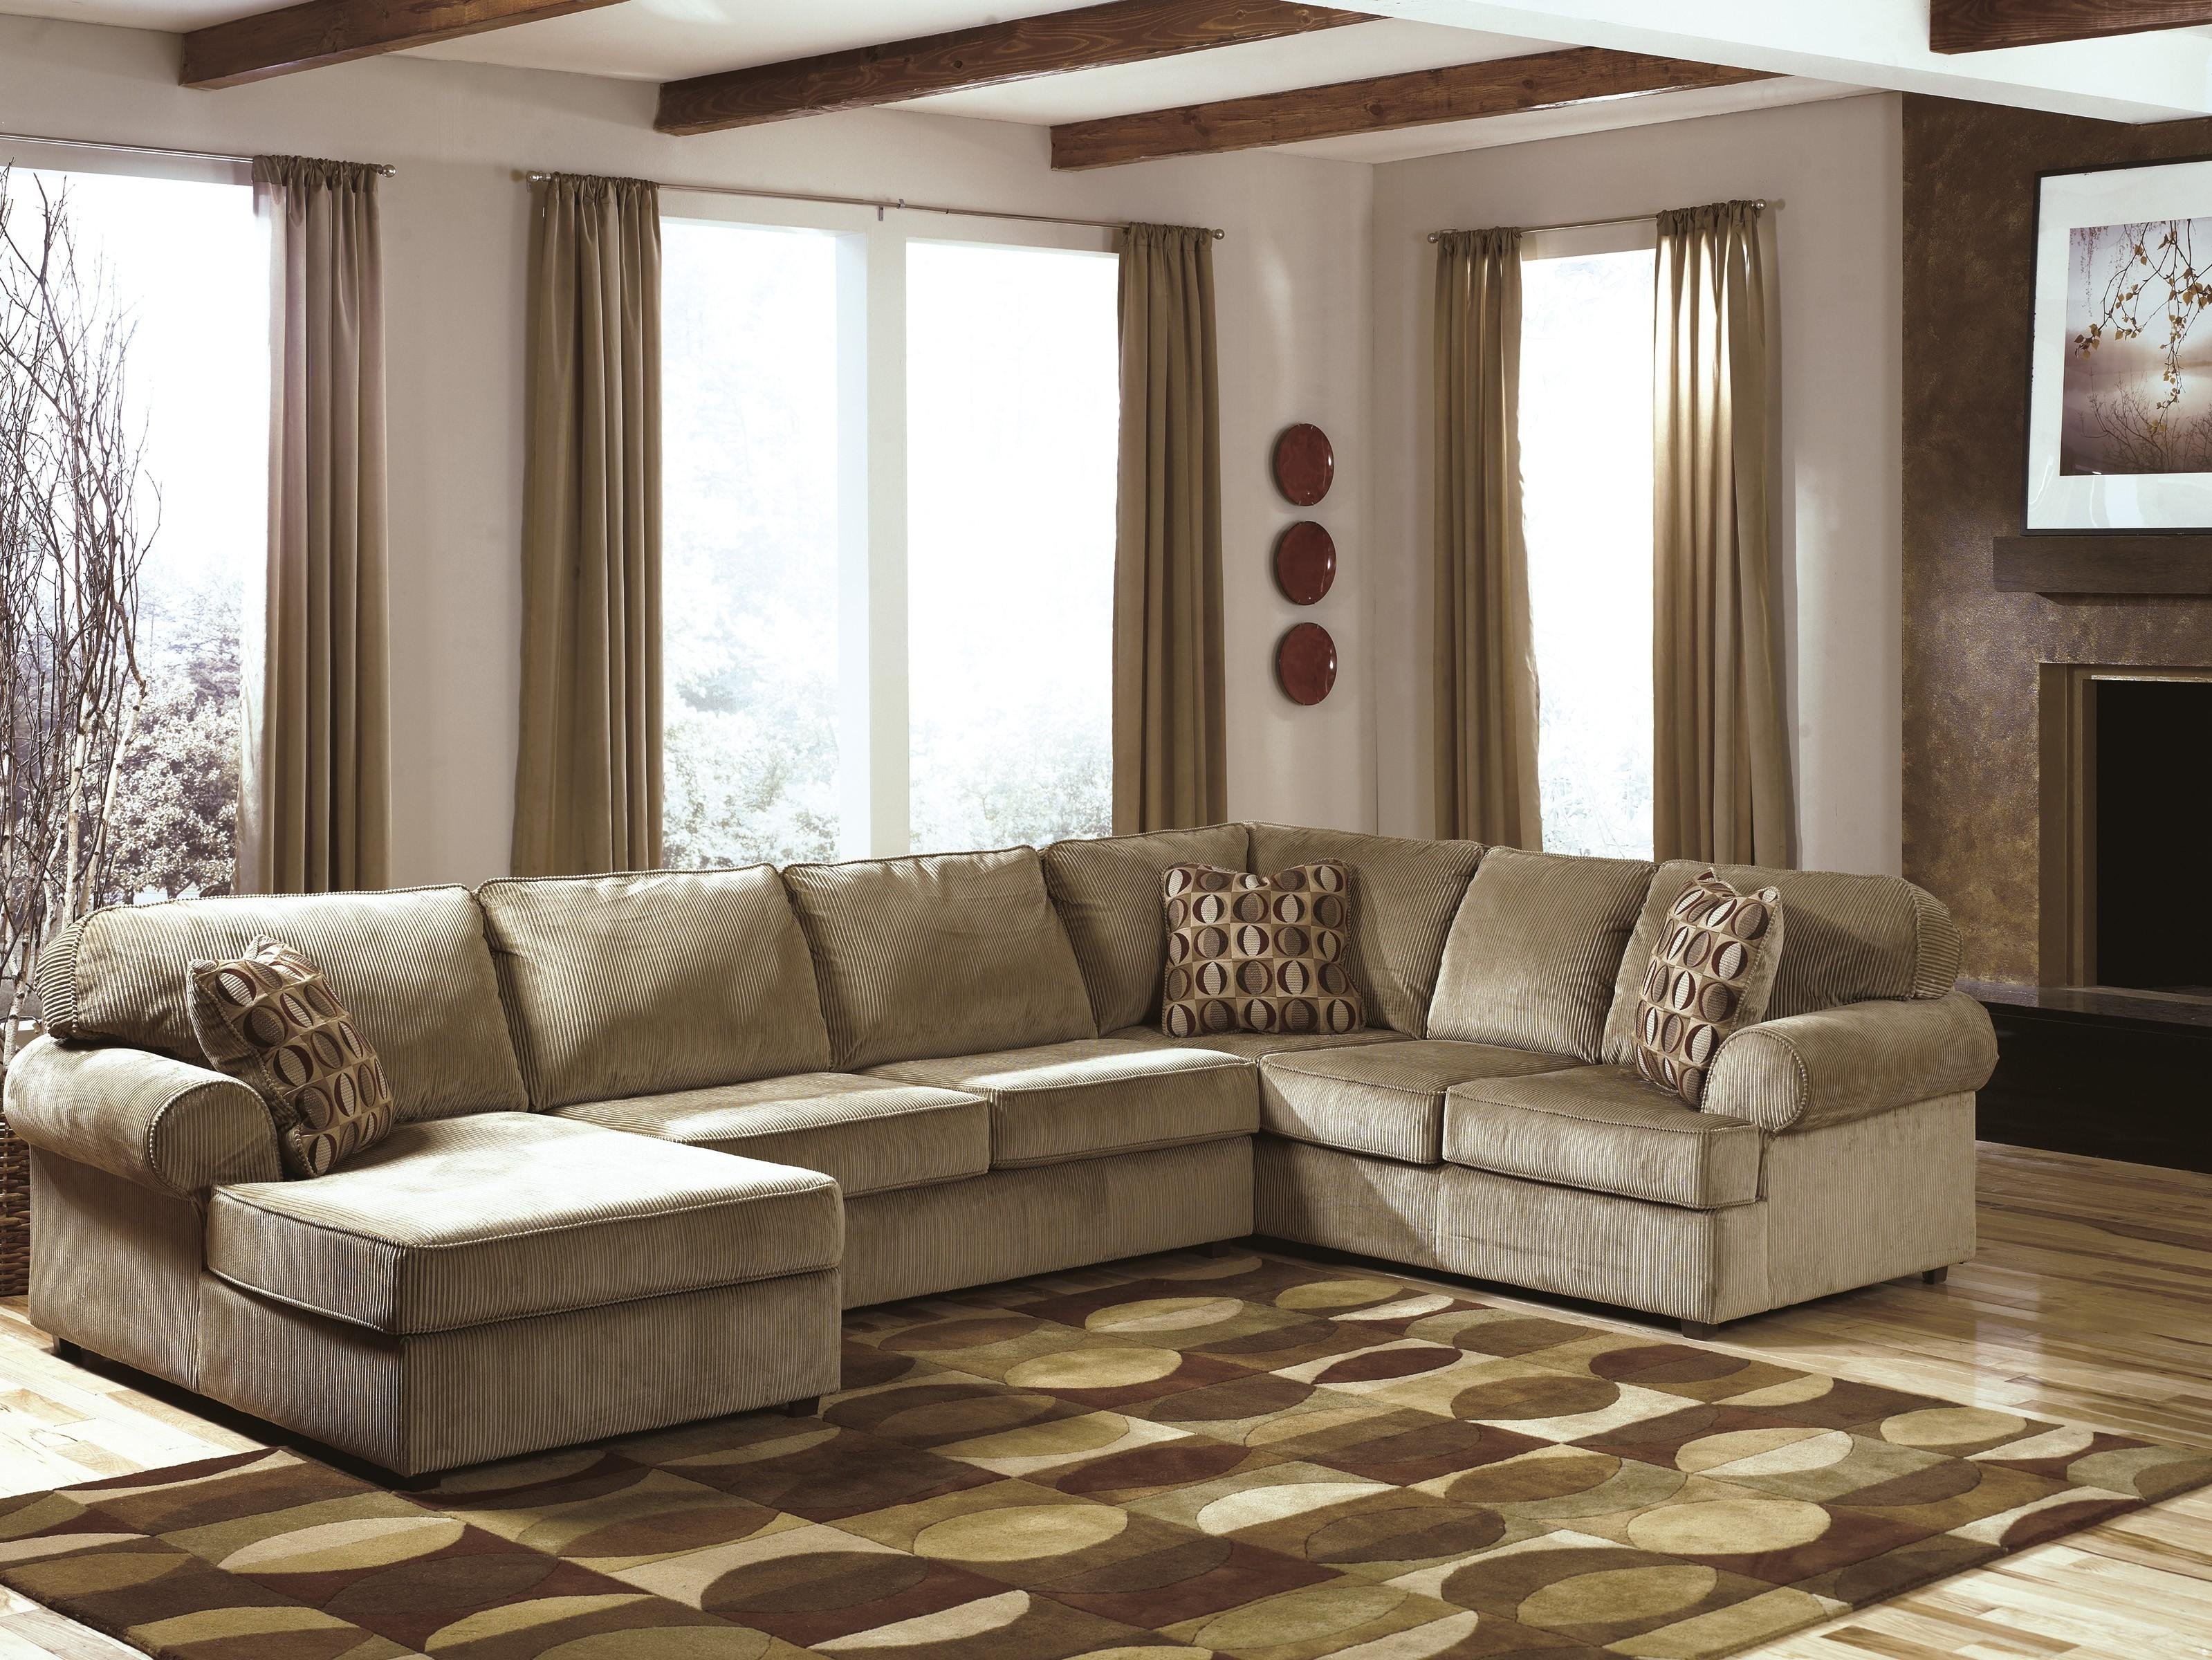 Furniture: Fantastic Sectional Couches With Recliners For Your Throughout Apartment Sectional With Chaise (Image 8 of 15)